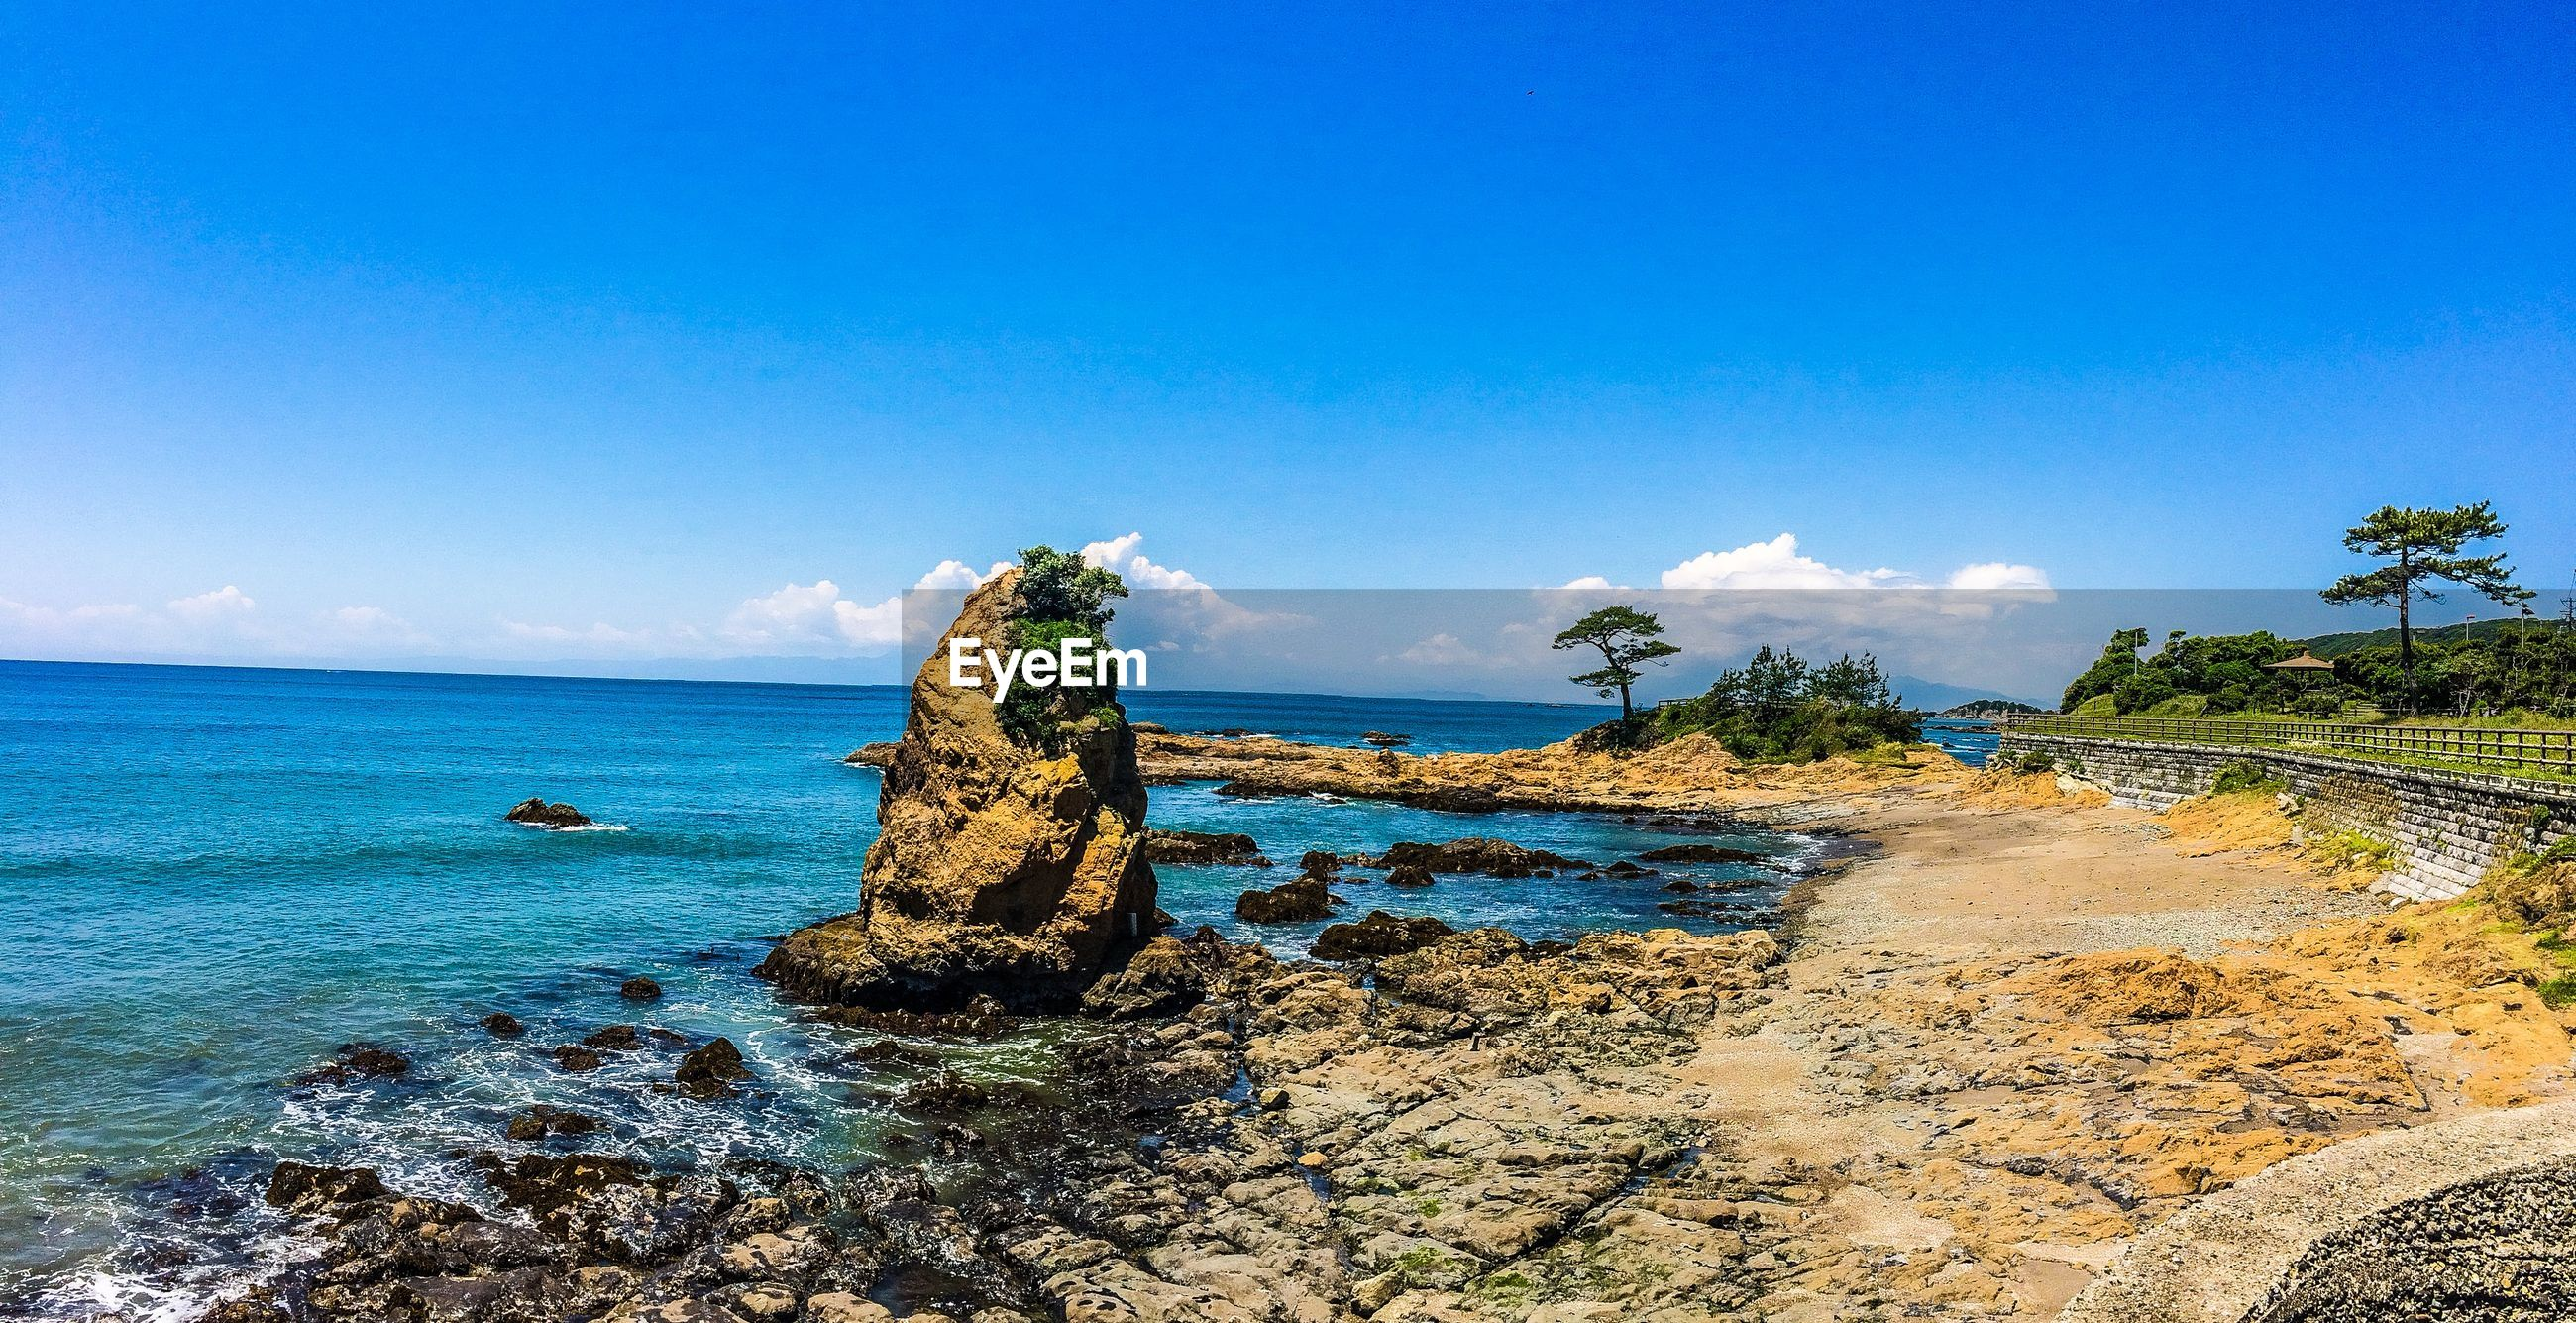 sea, horizon over water, water, beach, tranquil scene, blue, tranquility, scenics, shore, beauty in nature, sand, sky, nature, idyllic, coastline, copy space, incidental people, rock - object, cliff, clear sky